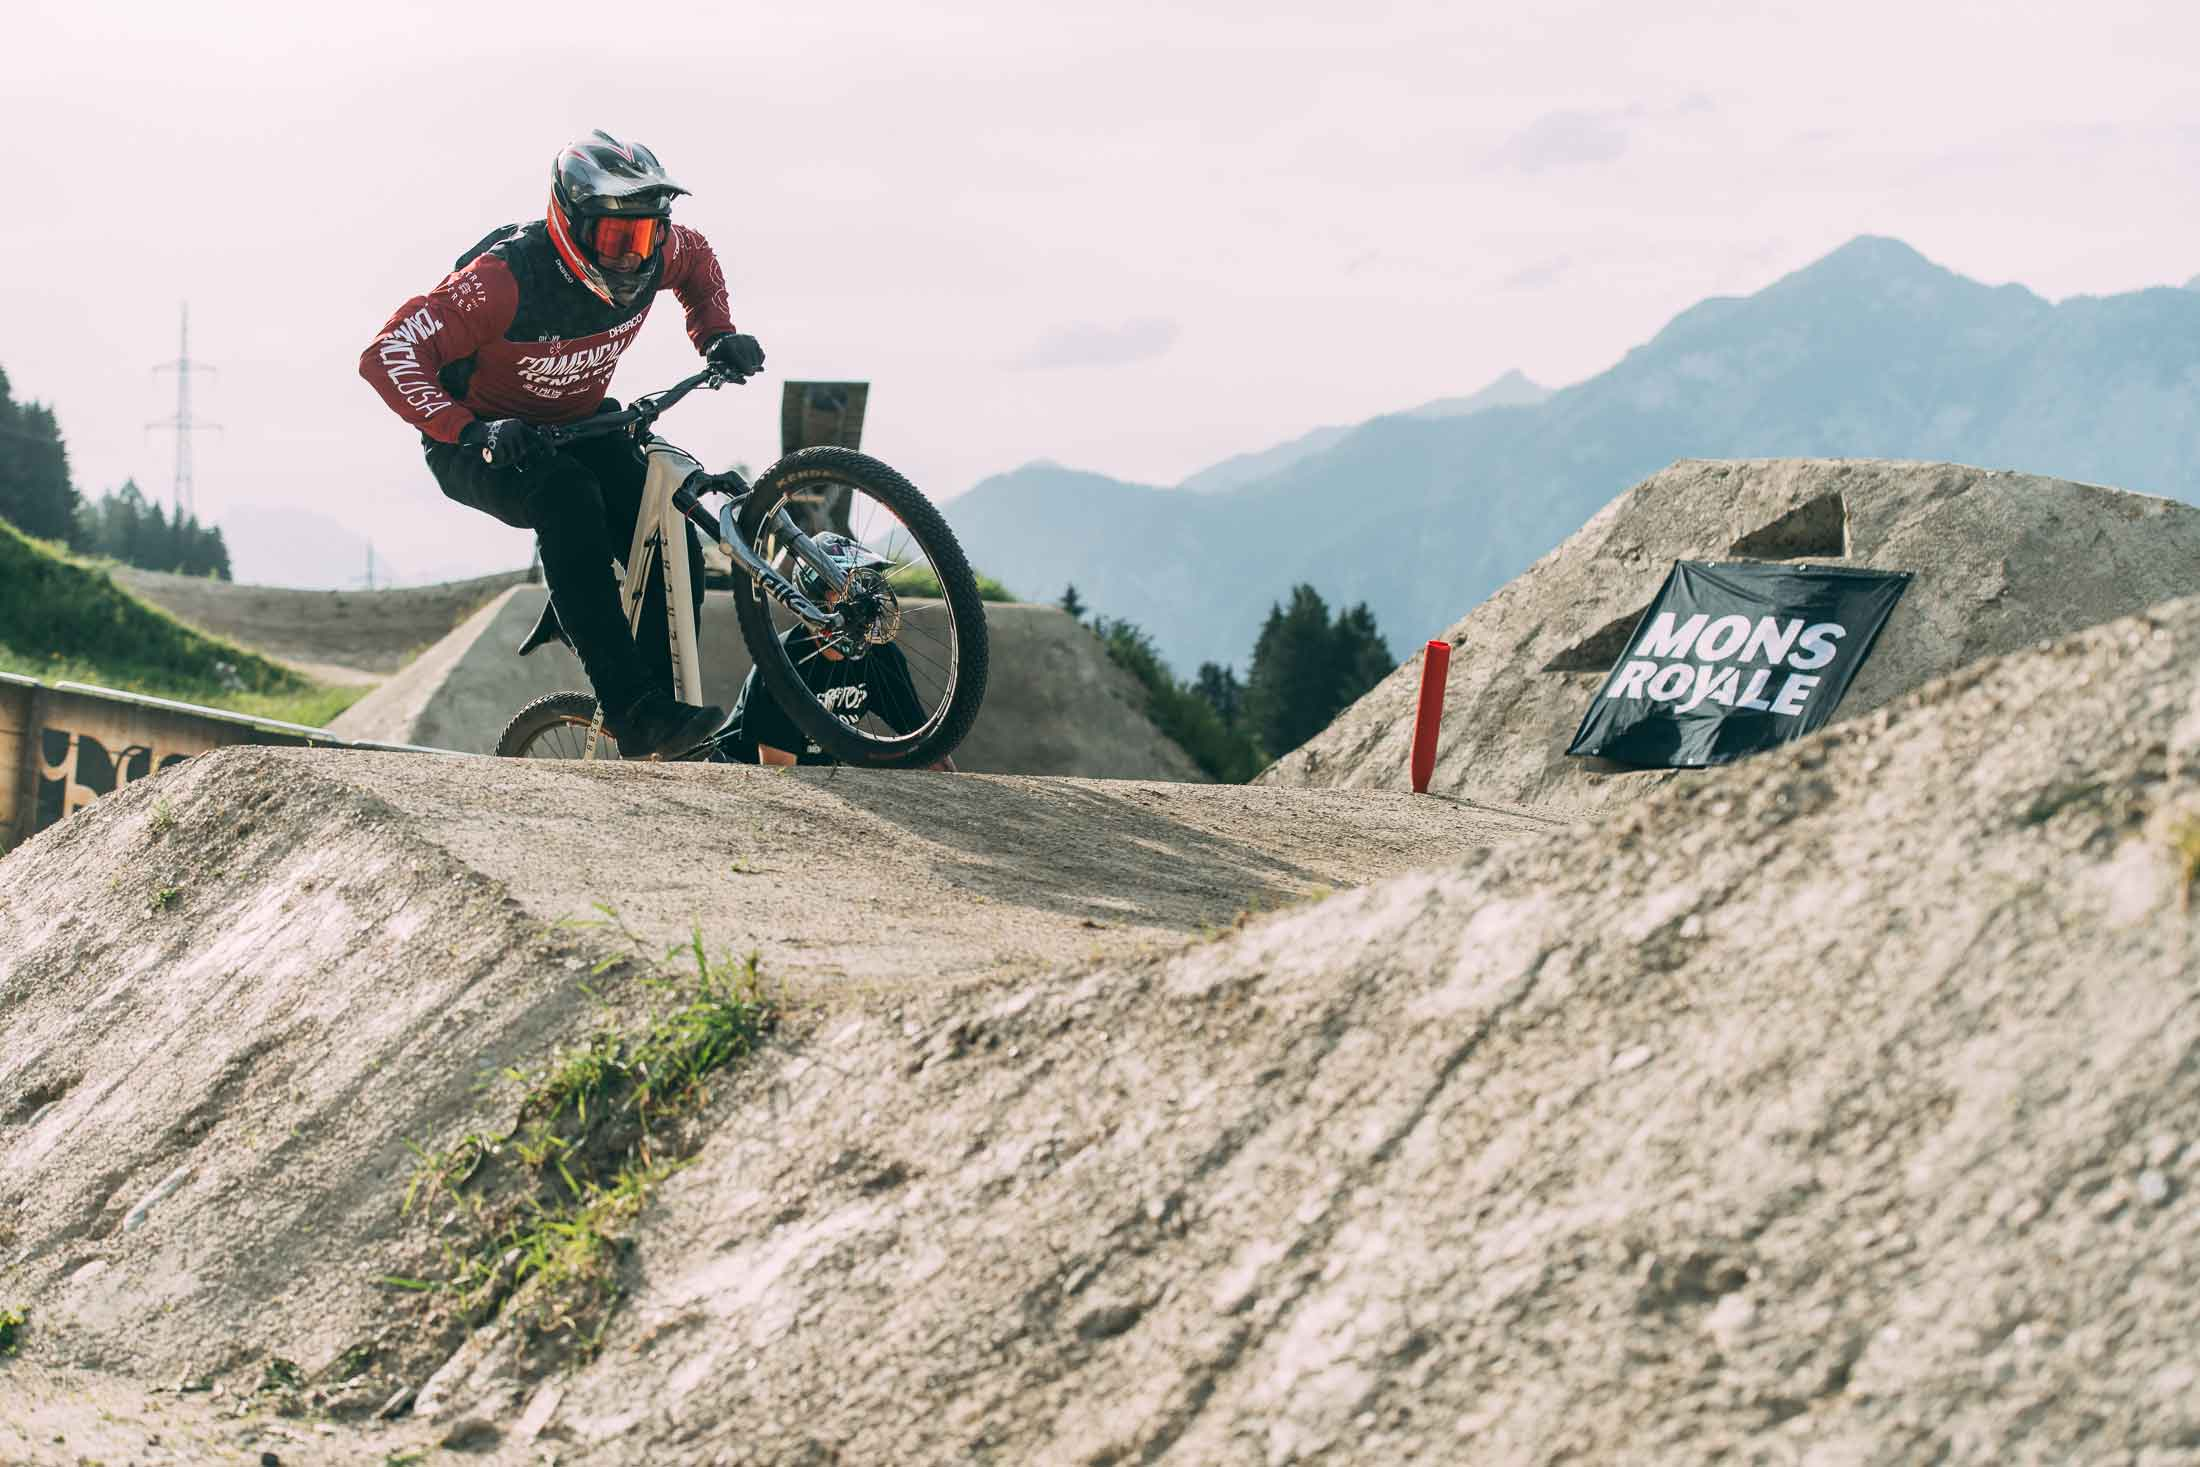 Kyle Strait at the Mons Royale Speed and Style at Crankworx Innsbruck